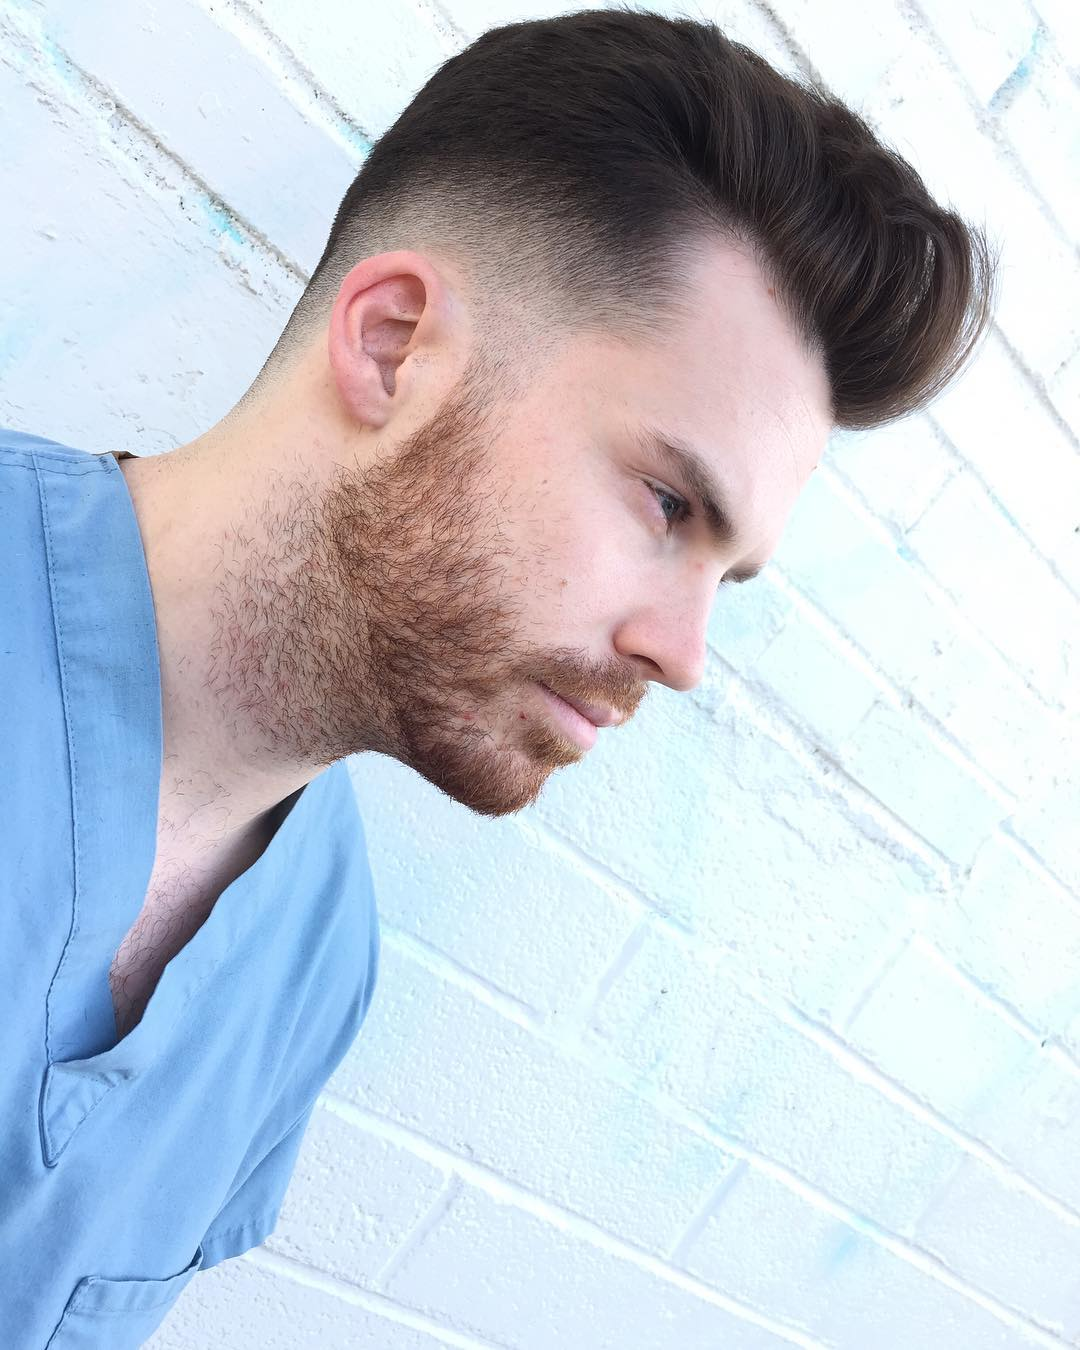 groovyhair low fade pomp mens haircuts